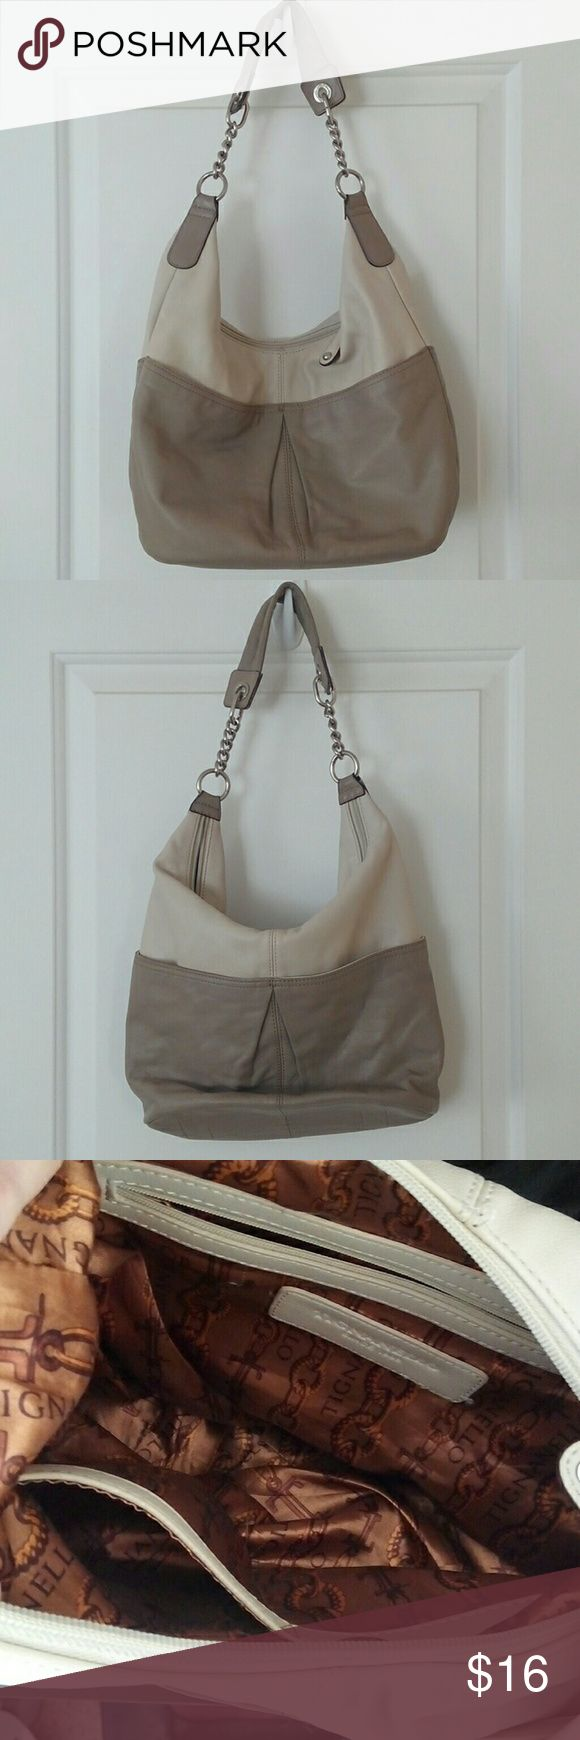 Tiganello Neutral purse Tiganello shoulder bag, kind of like a hobo. Roomy, lightweight,  strap with silver chain details and soft shoulder strap, drop is 11in. Exterior is 14x 4.5x 9 in, with four exterior pockets. Interior clean with 3 pockets,one is zippered. Great two tone neutral colors. Used but good condition.  Genuine leather. Tignanello Bags Shoulder Bags